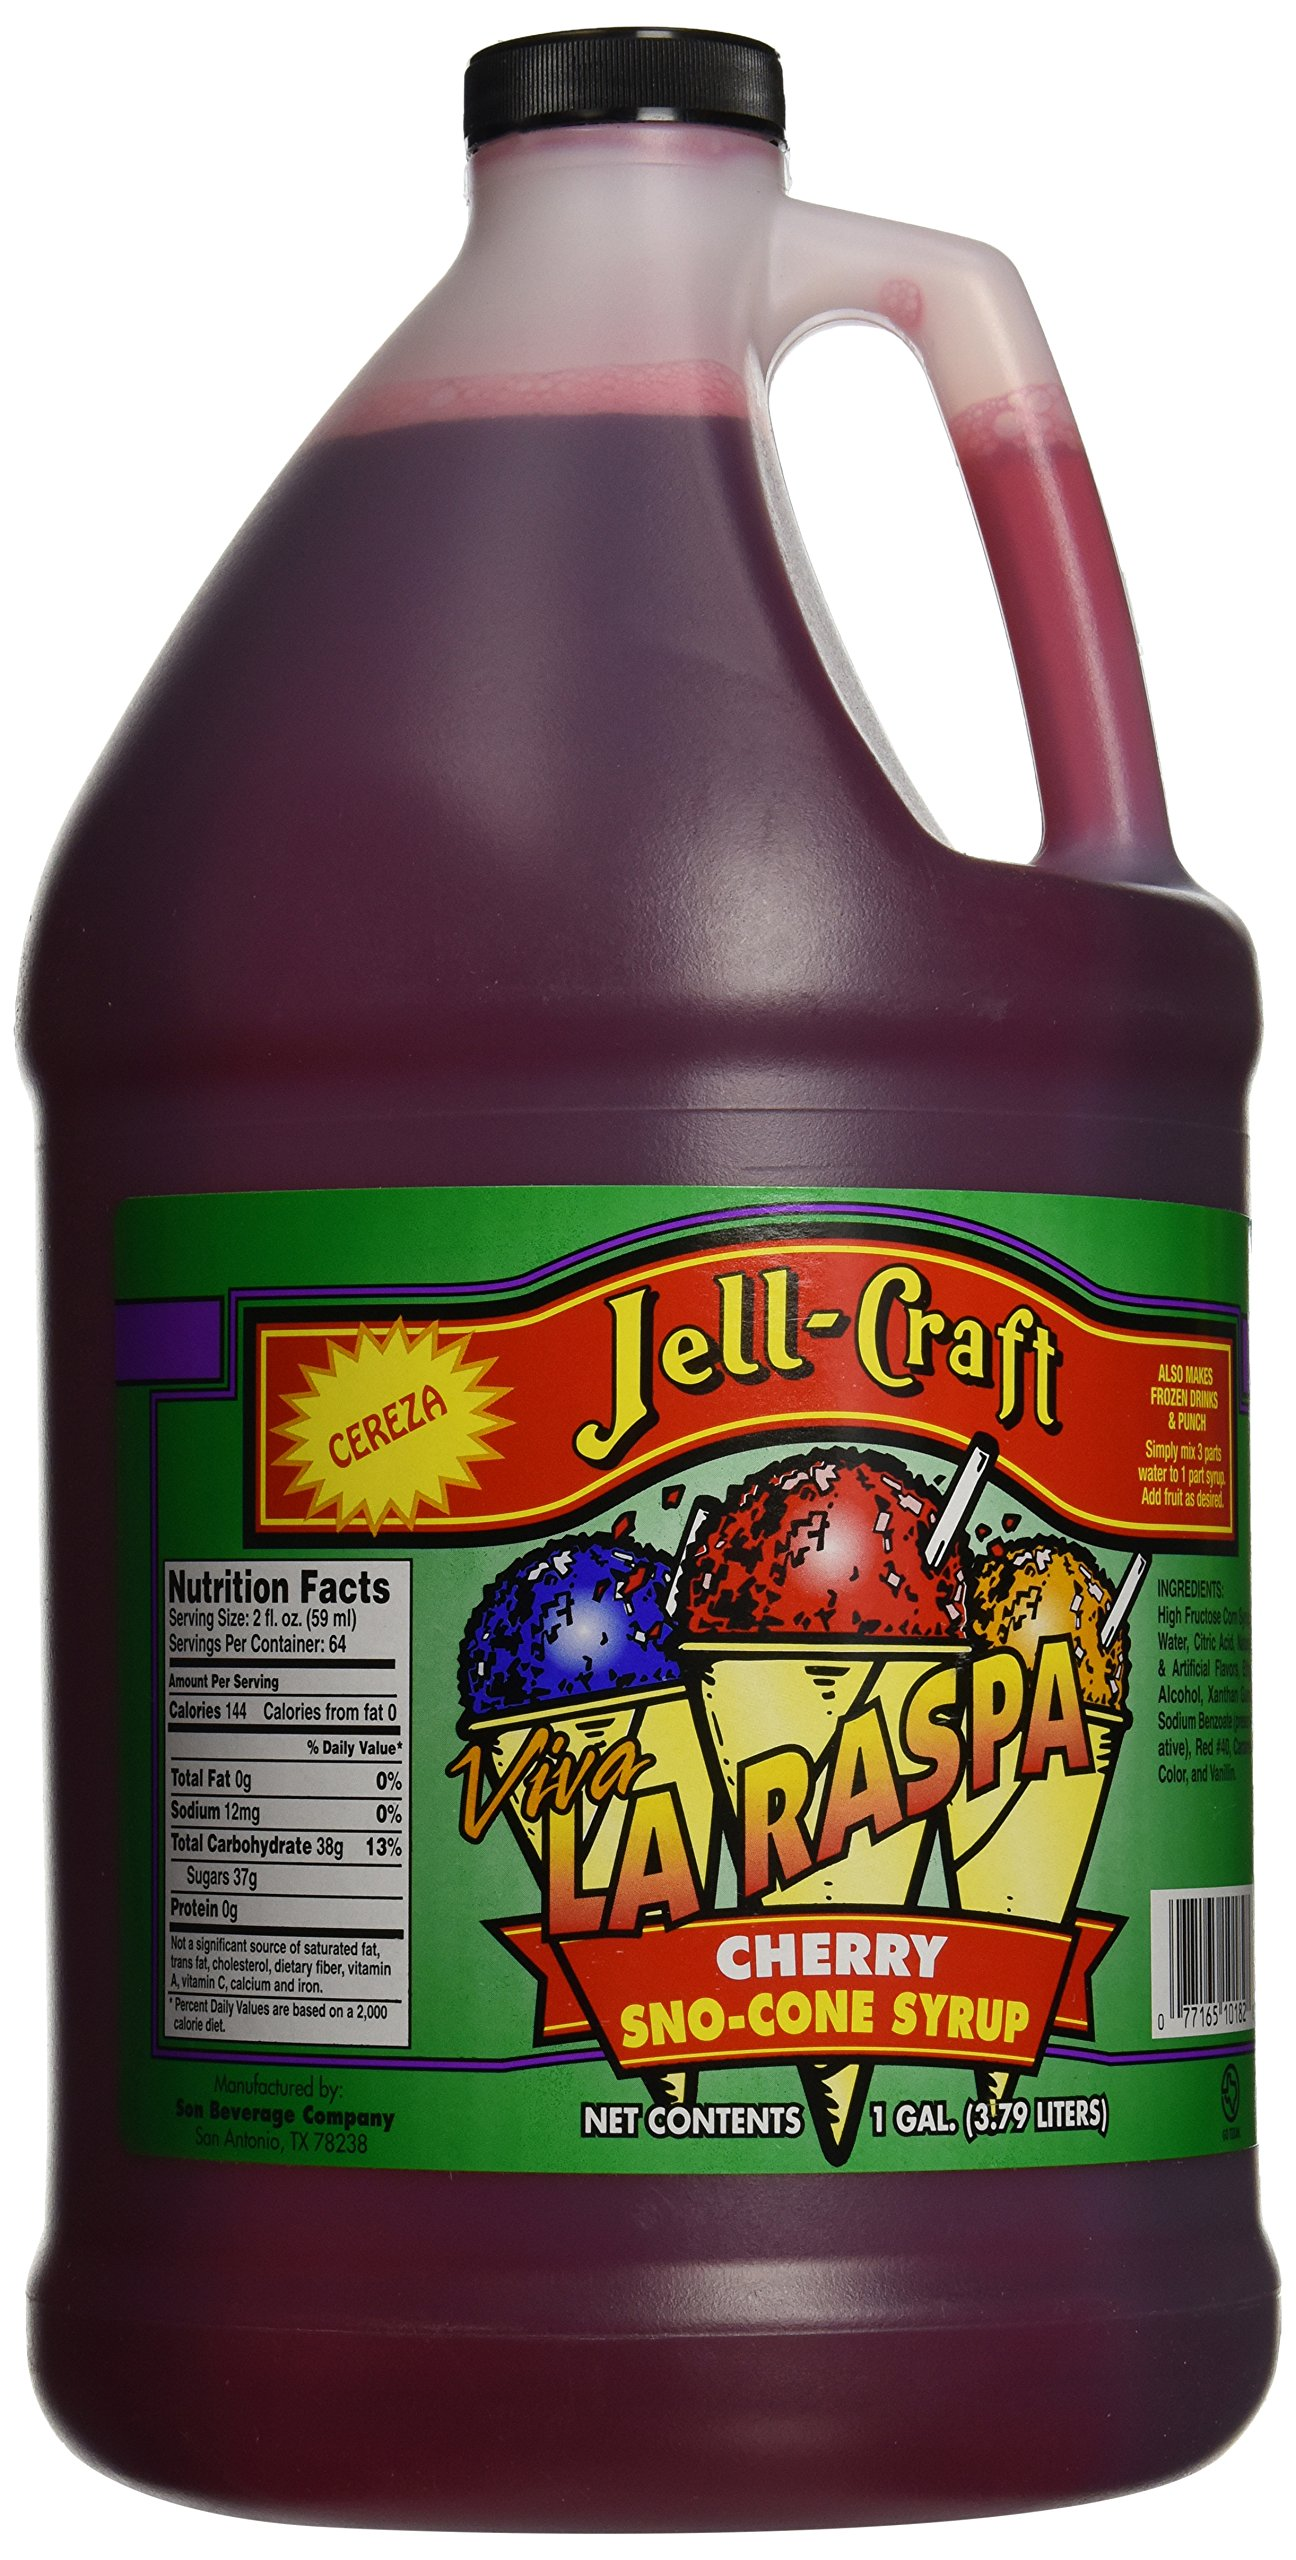 Jell-Craft Cherry Snow Cone Syrup, 128 Ounce